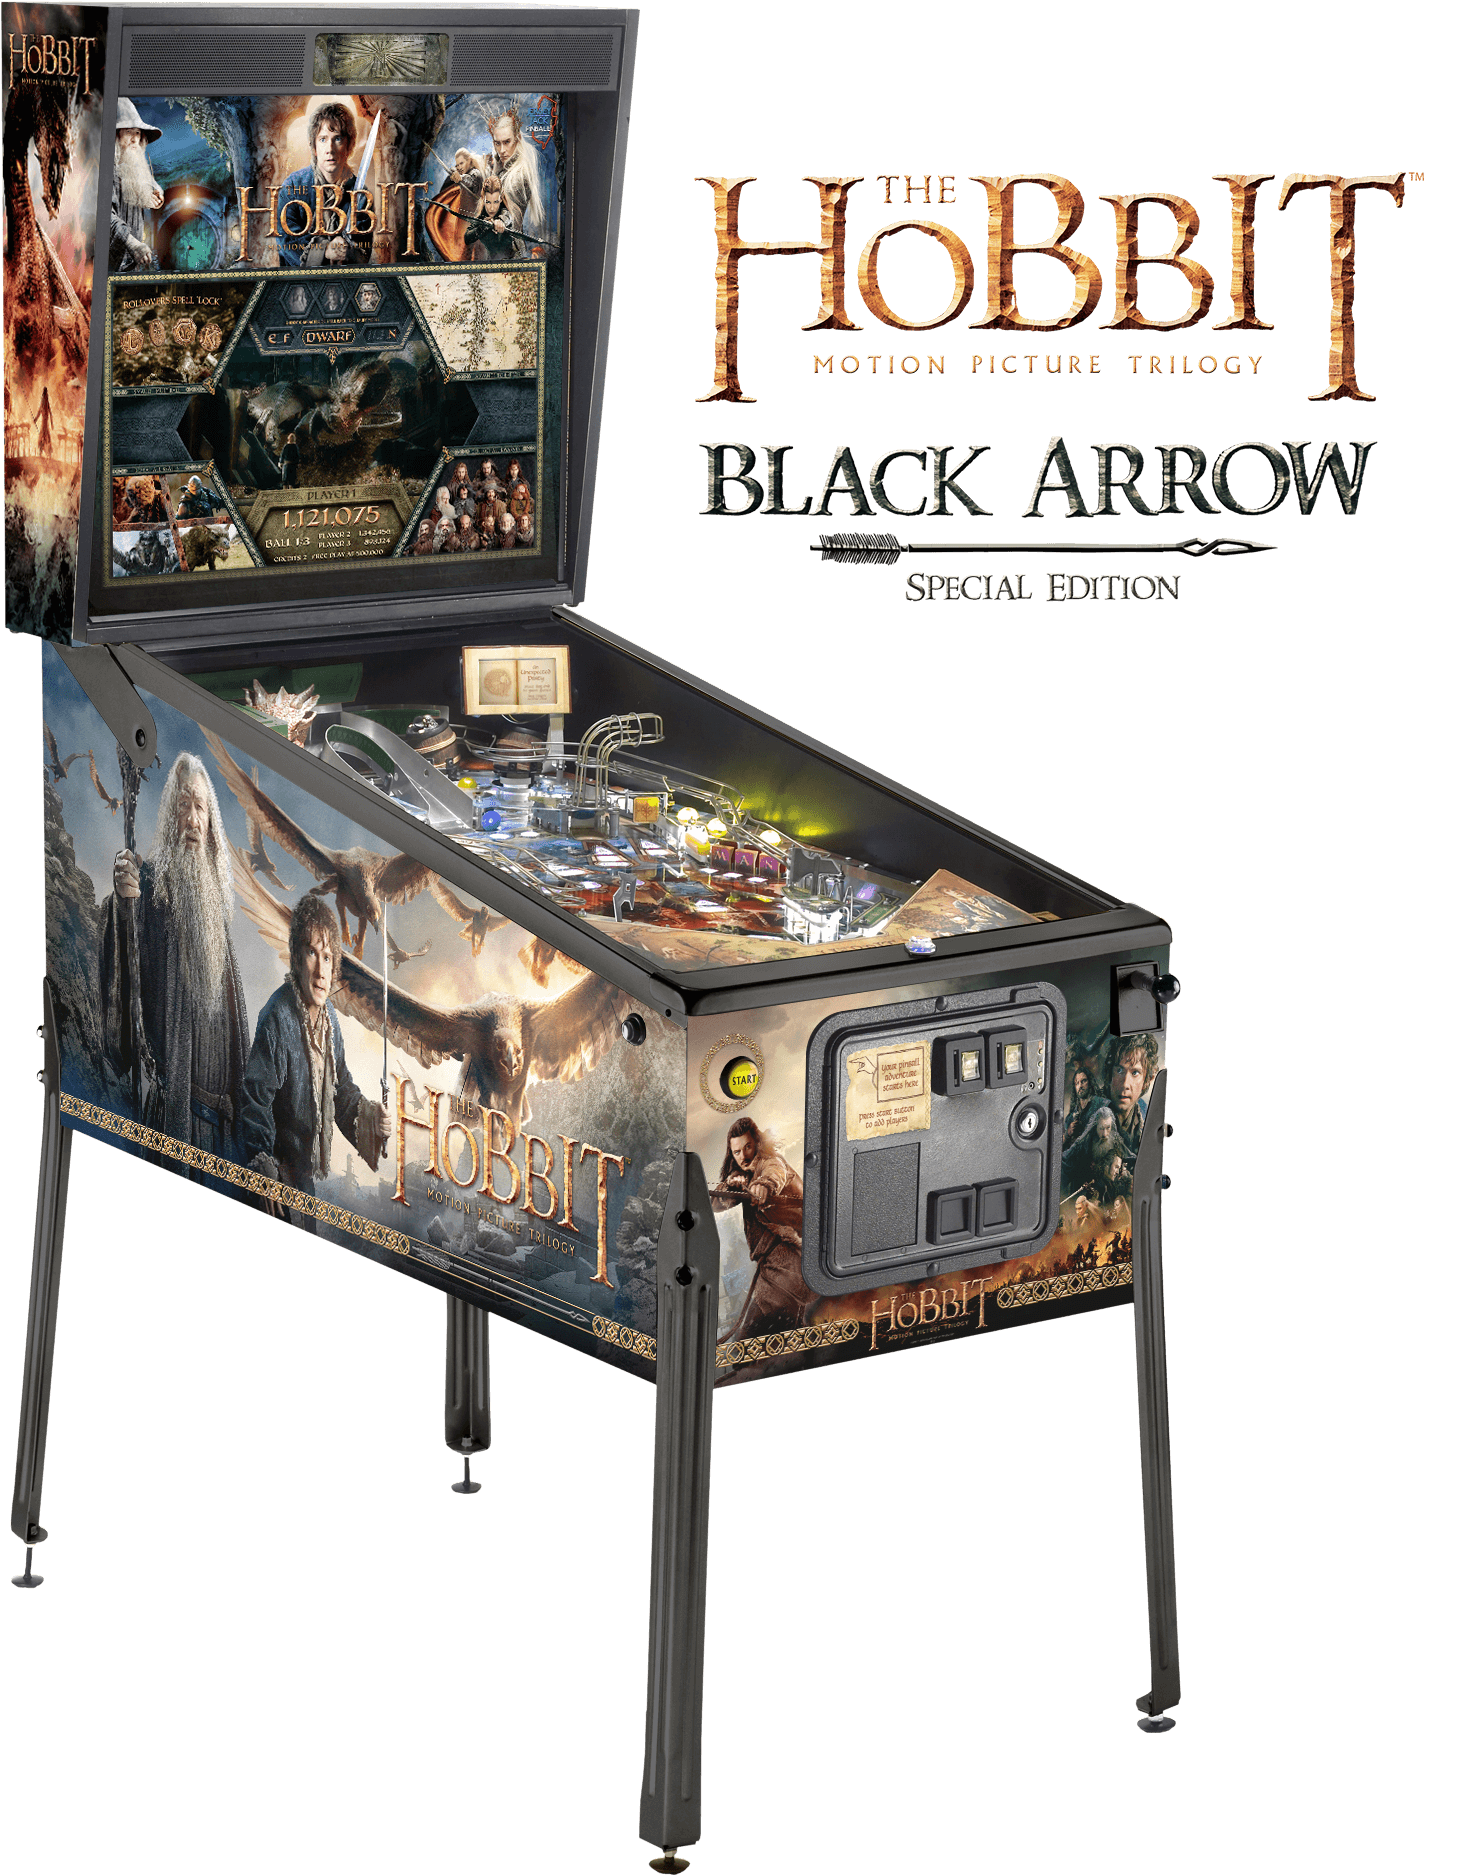 Black Arrow Edition, The Hobbit